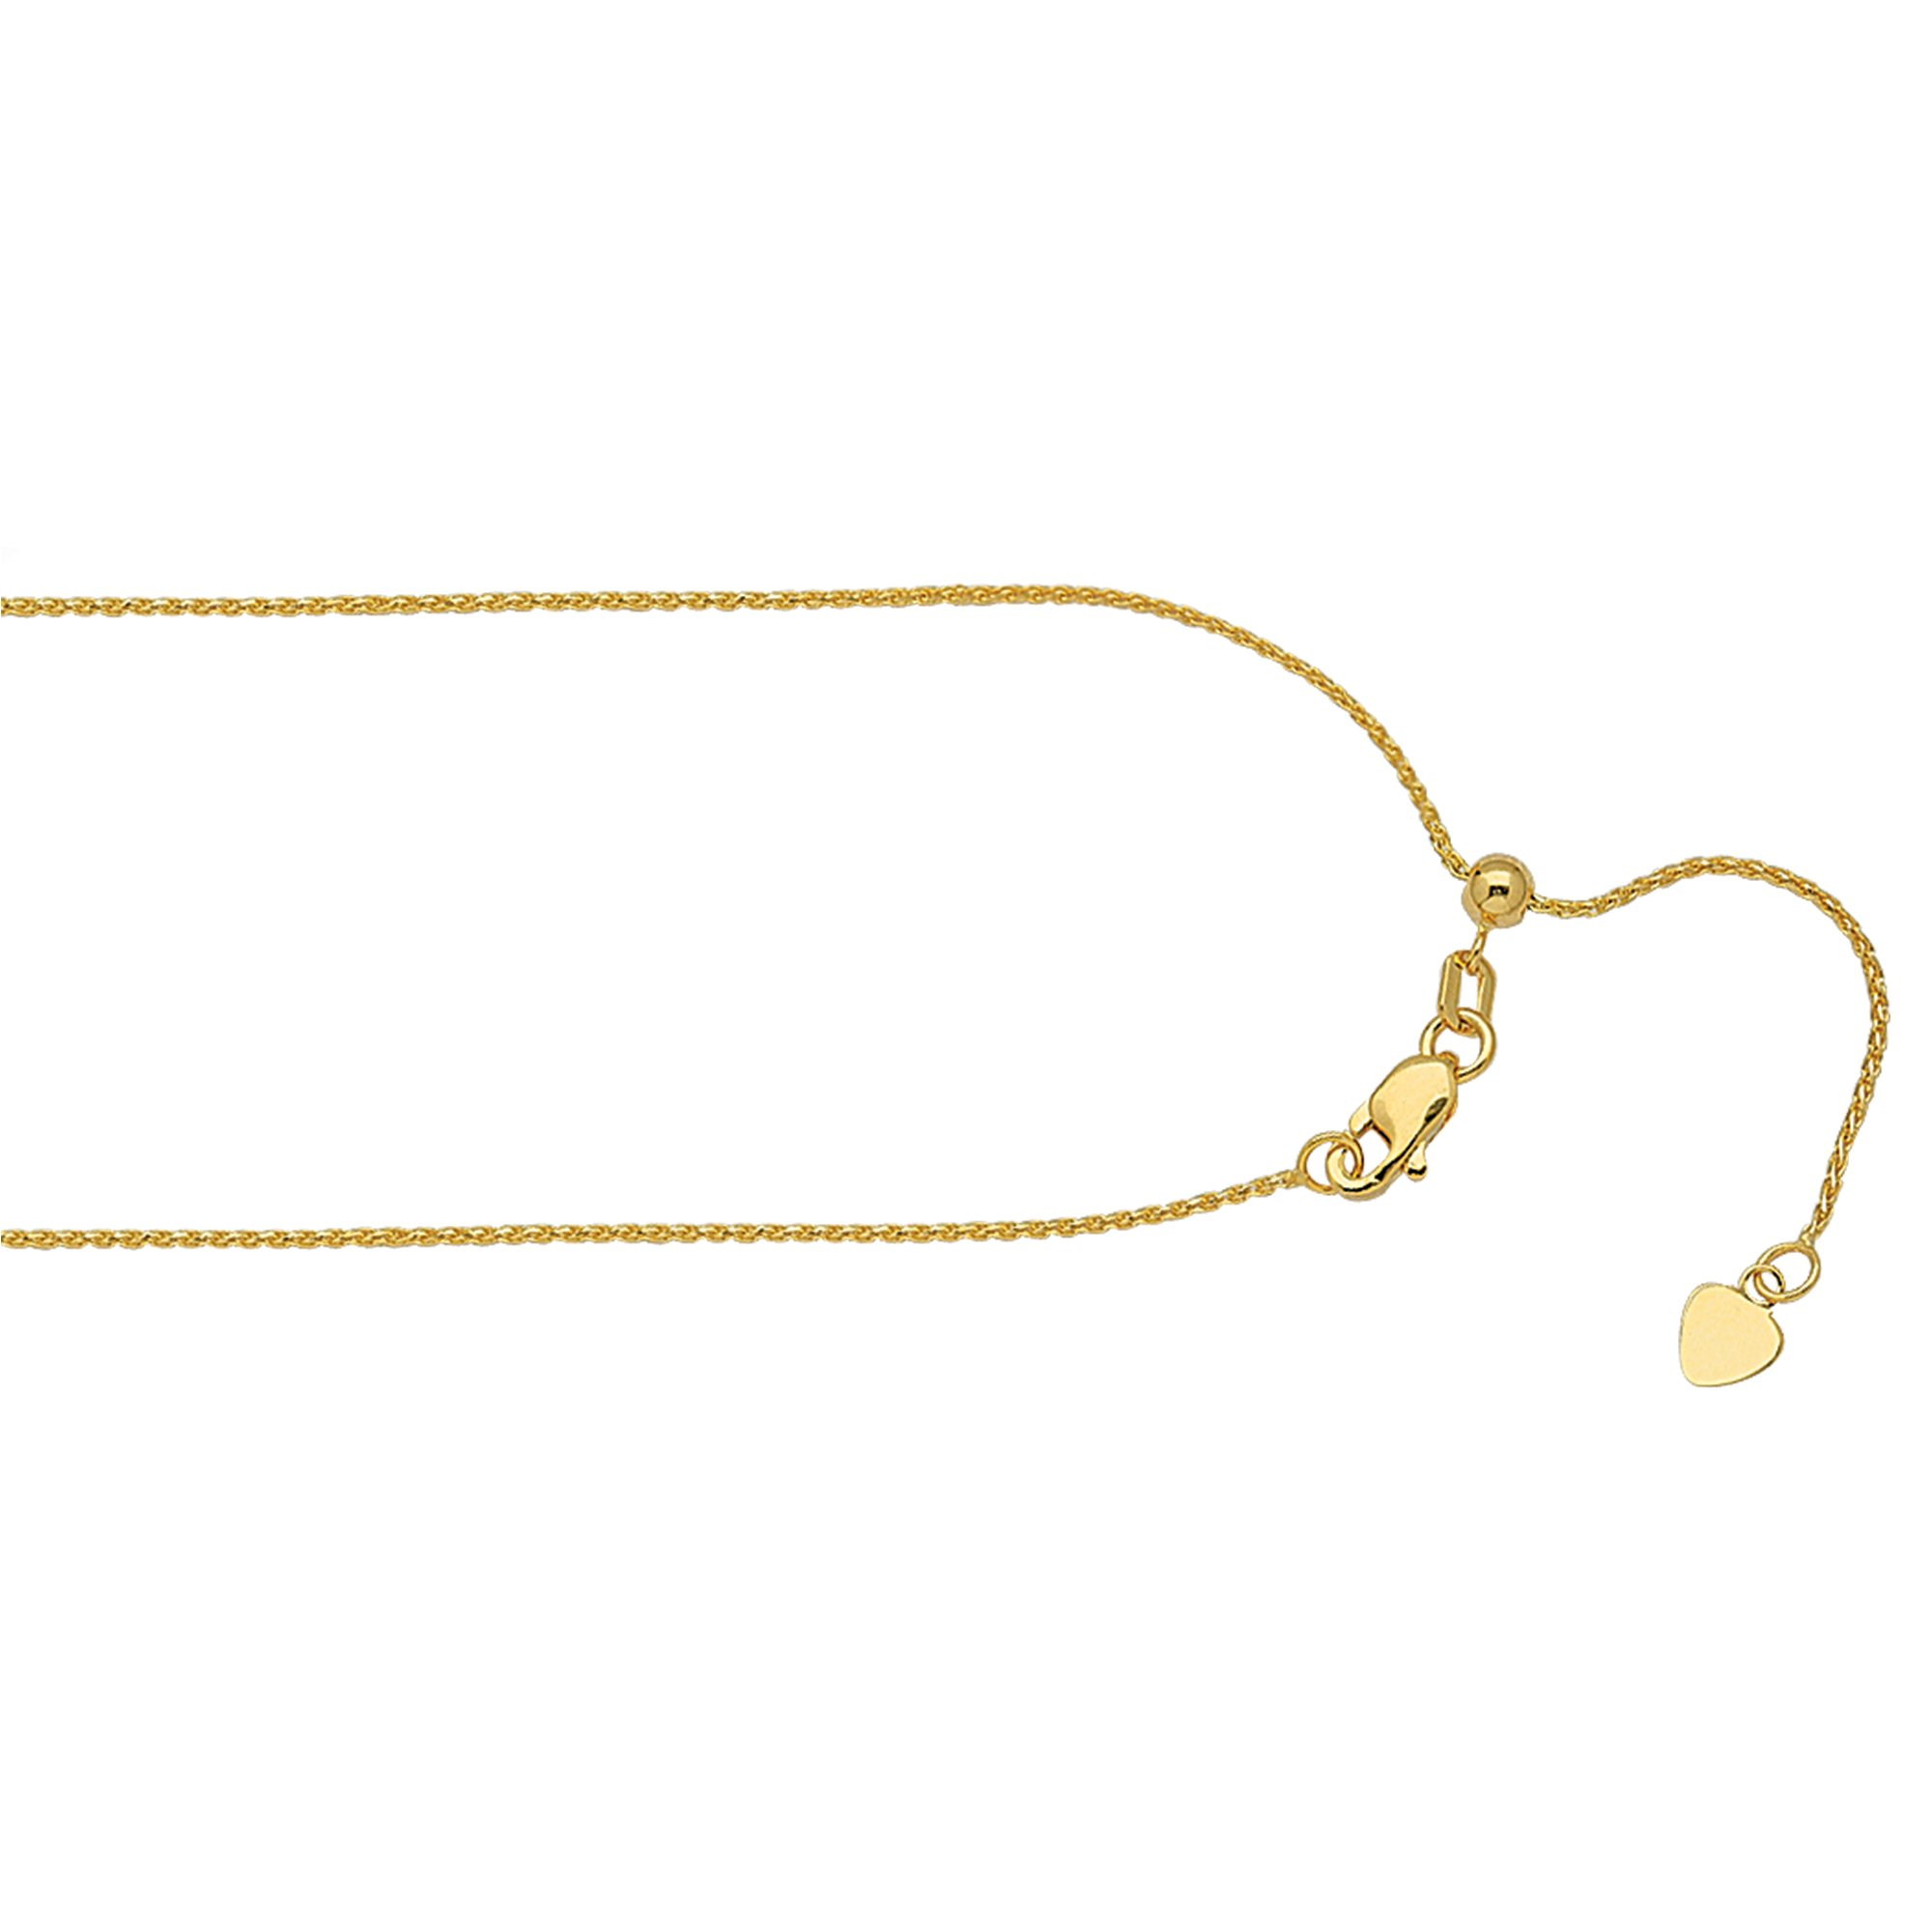 WHEAT CHAIN , 14KT GOLD WHEAT CHAIN / 22'' INCHES LONG